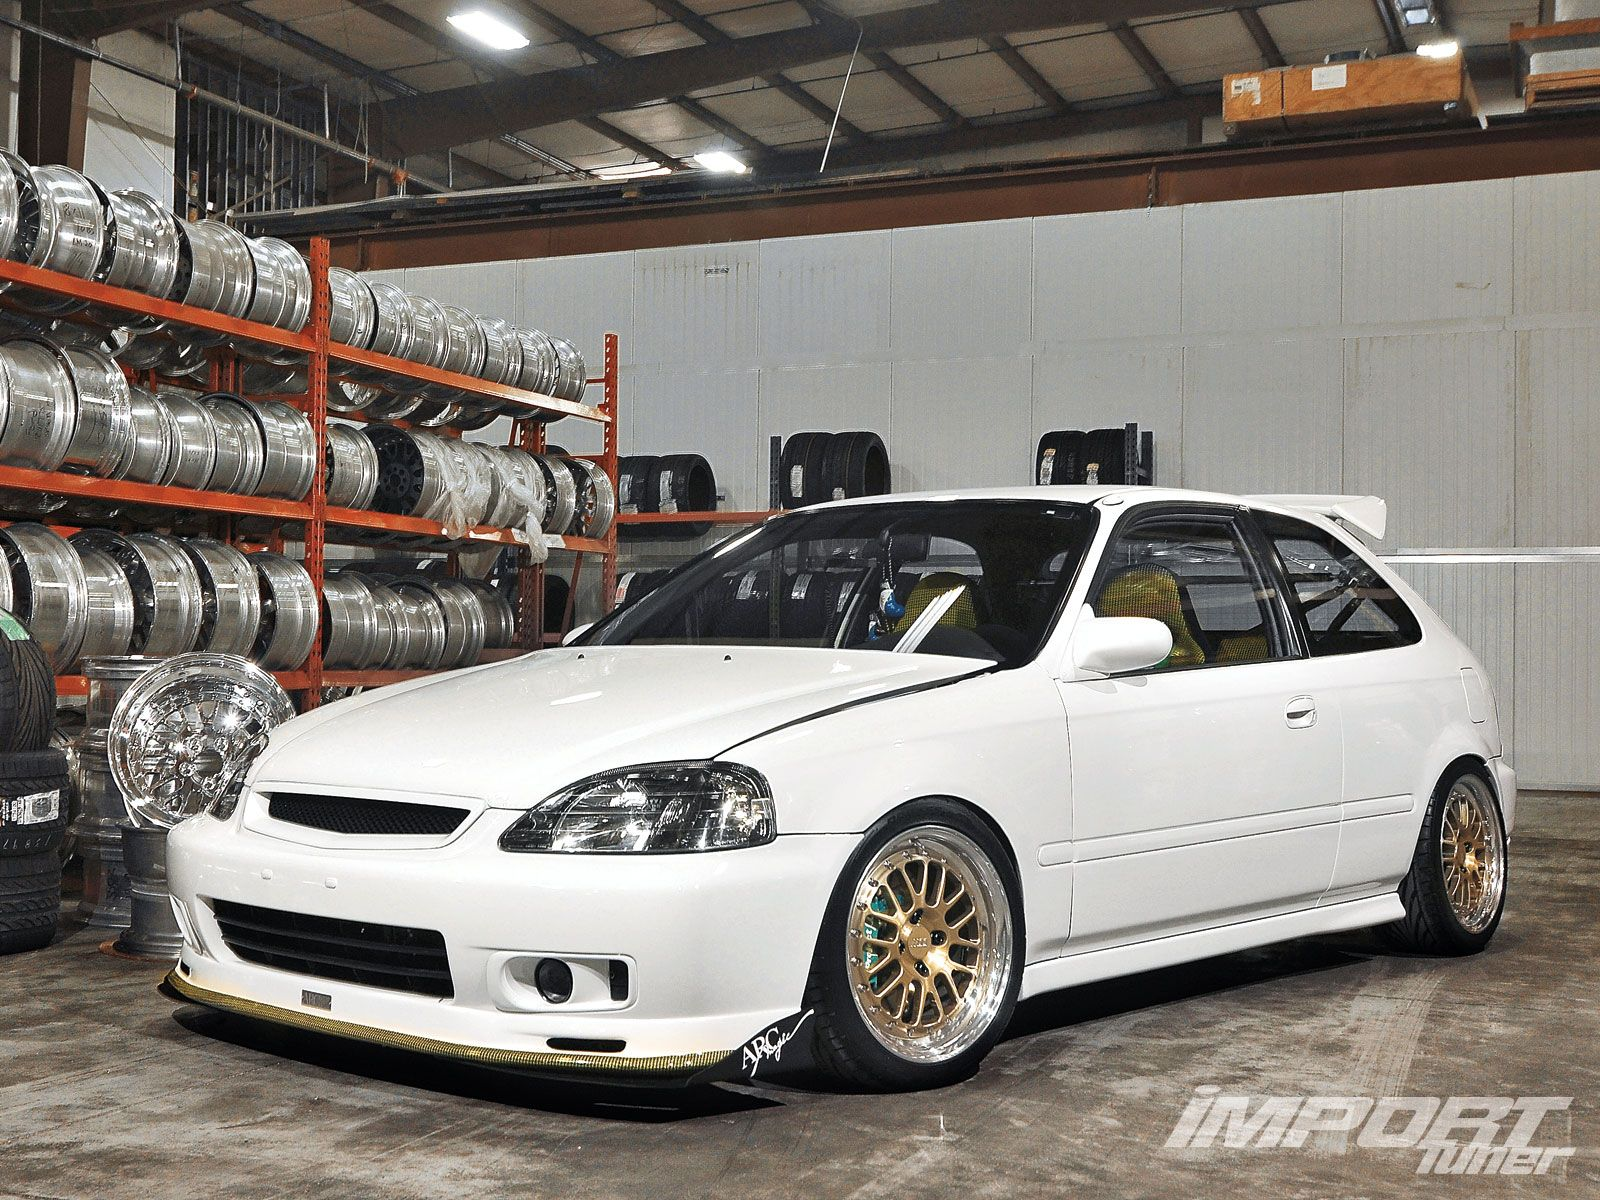 1996 Honda Civic Dx Import Tuner Magazine Honda Civic Dx Honda Civic Honda